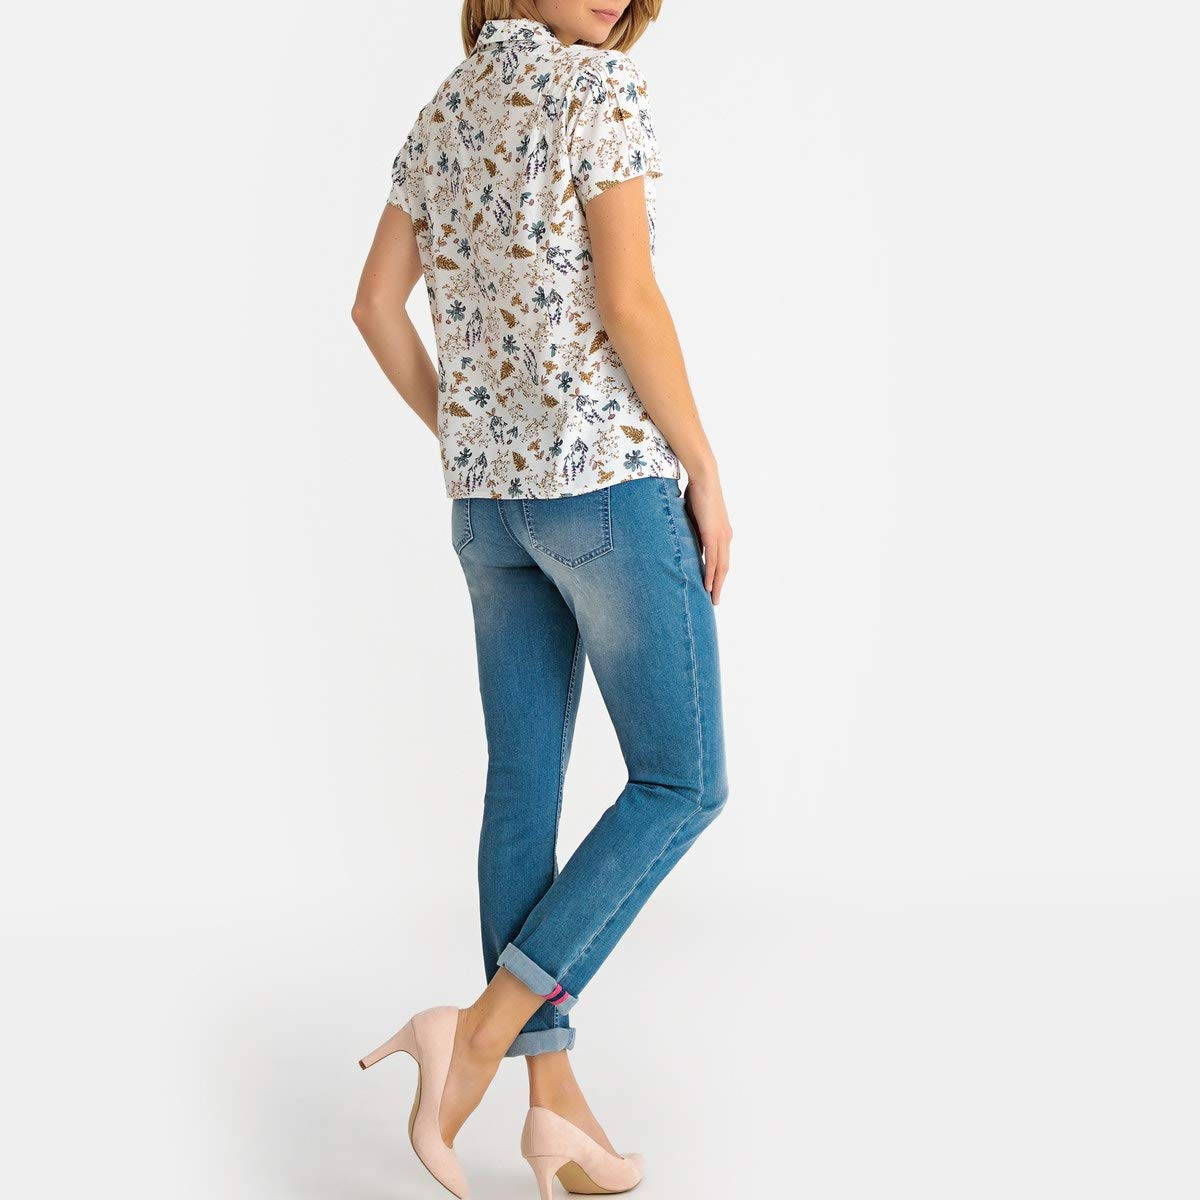 La Redoute Womens Floral Print Short-Sleeved Blouse